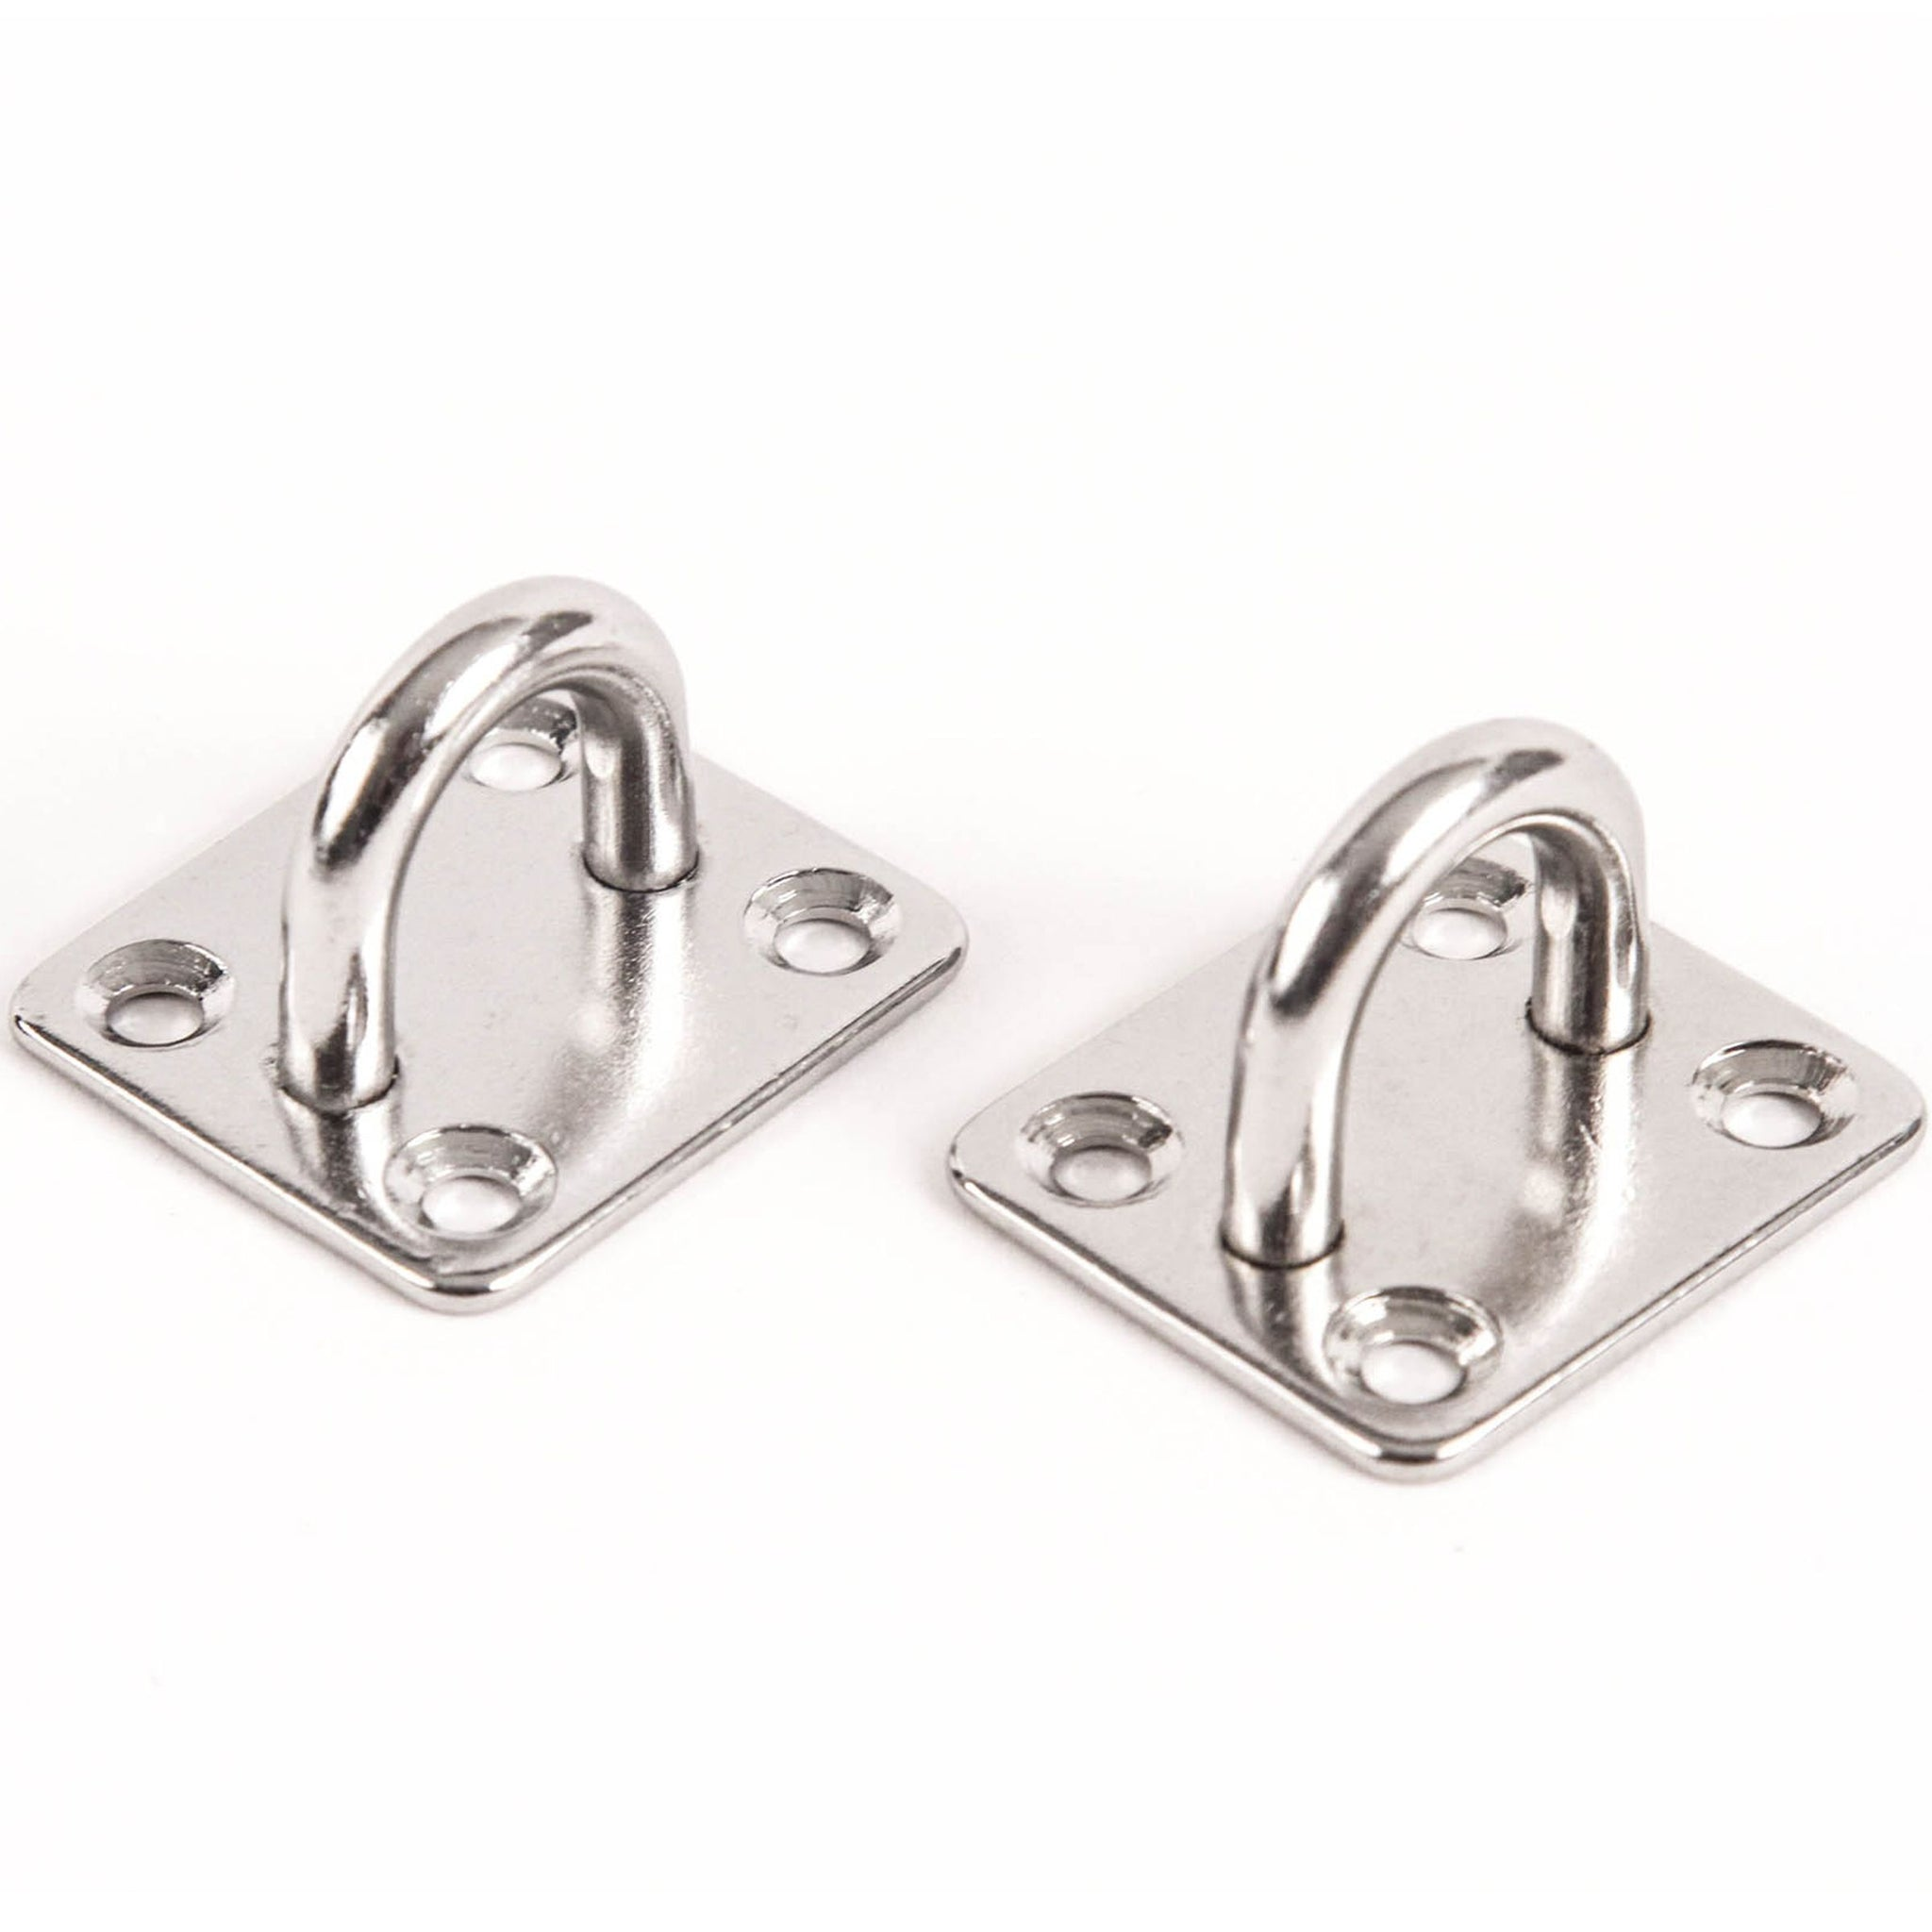 Red Hound Auto 2 Stainless Steel 316 6mm Square Eye Plates 1/4 Inches Marine SS Pad Boat Rigging